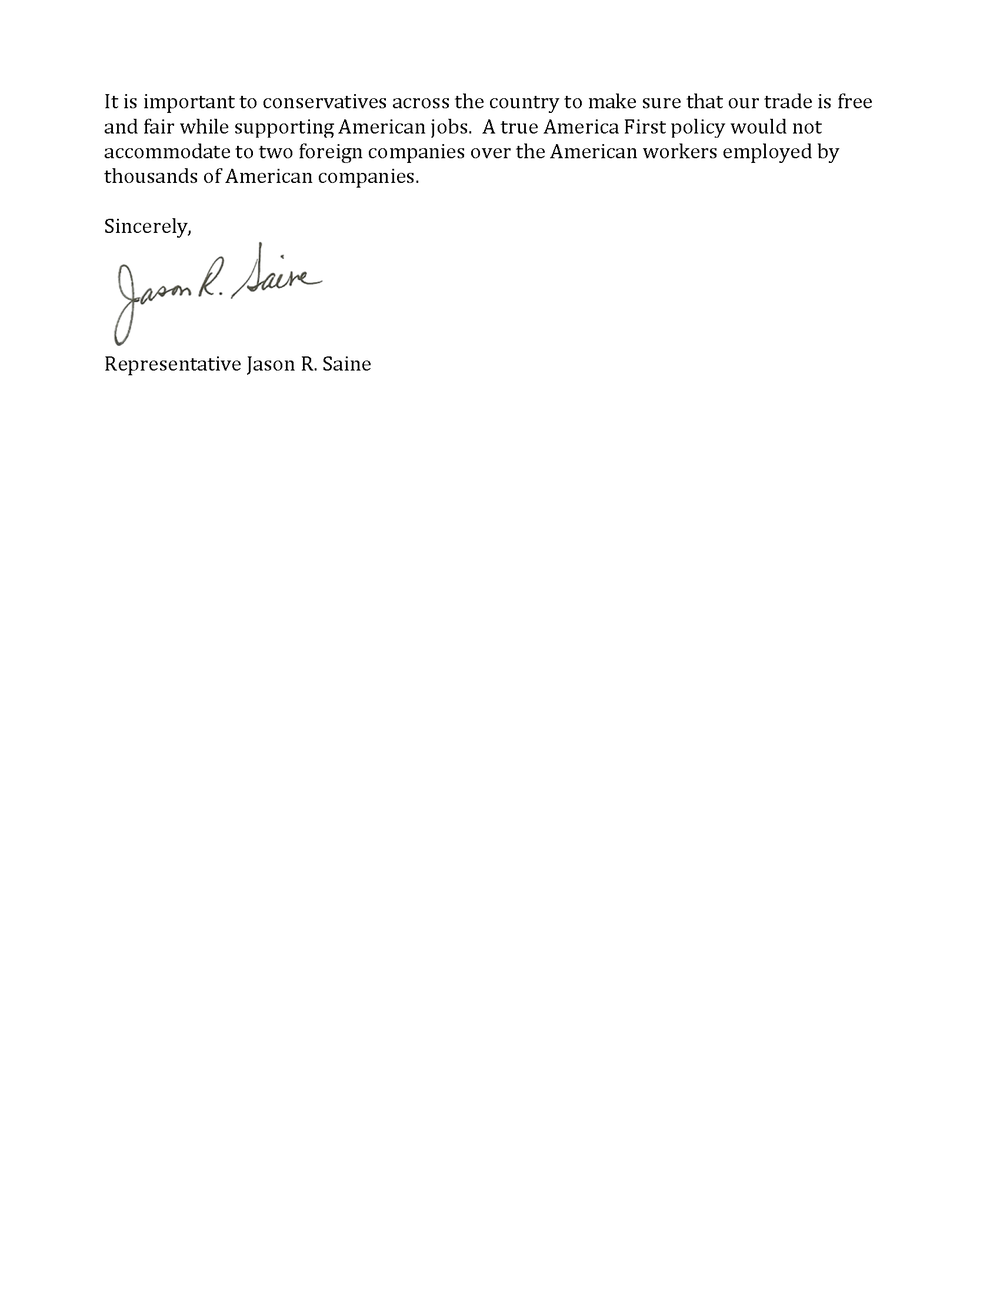 Rep Saine Solar Letter to POTUS_Page_2.png